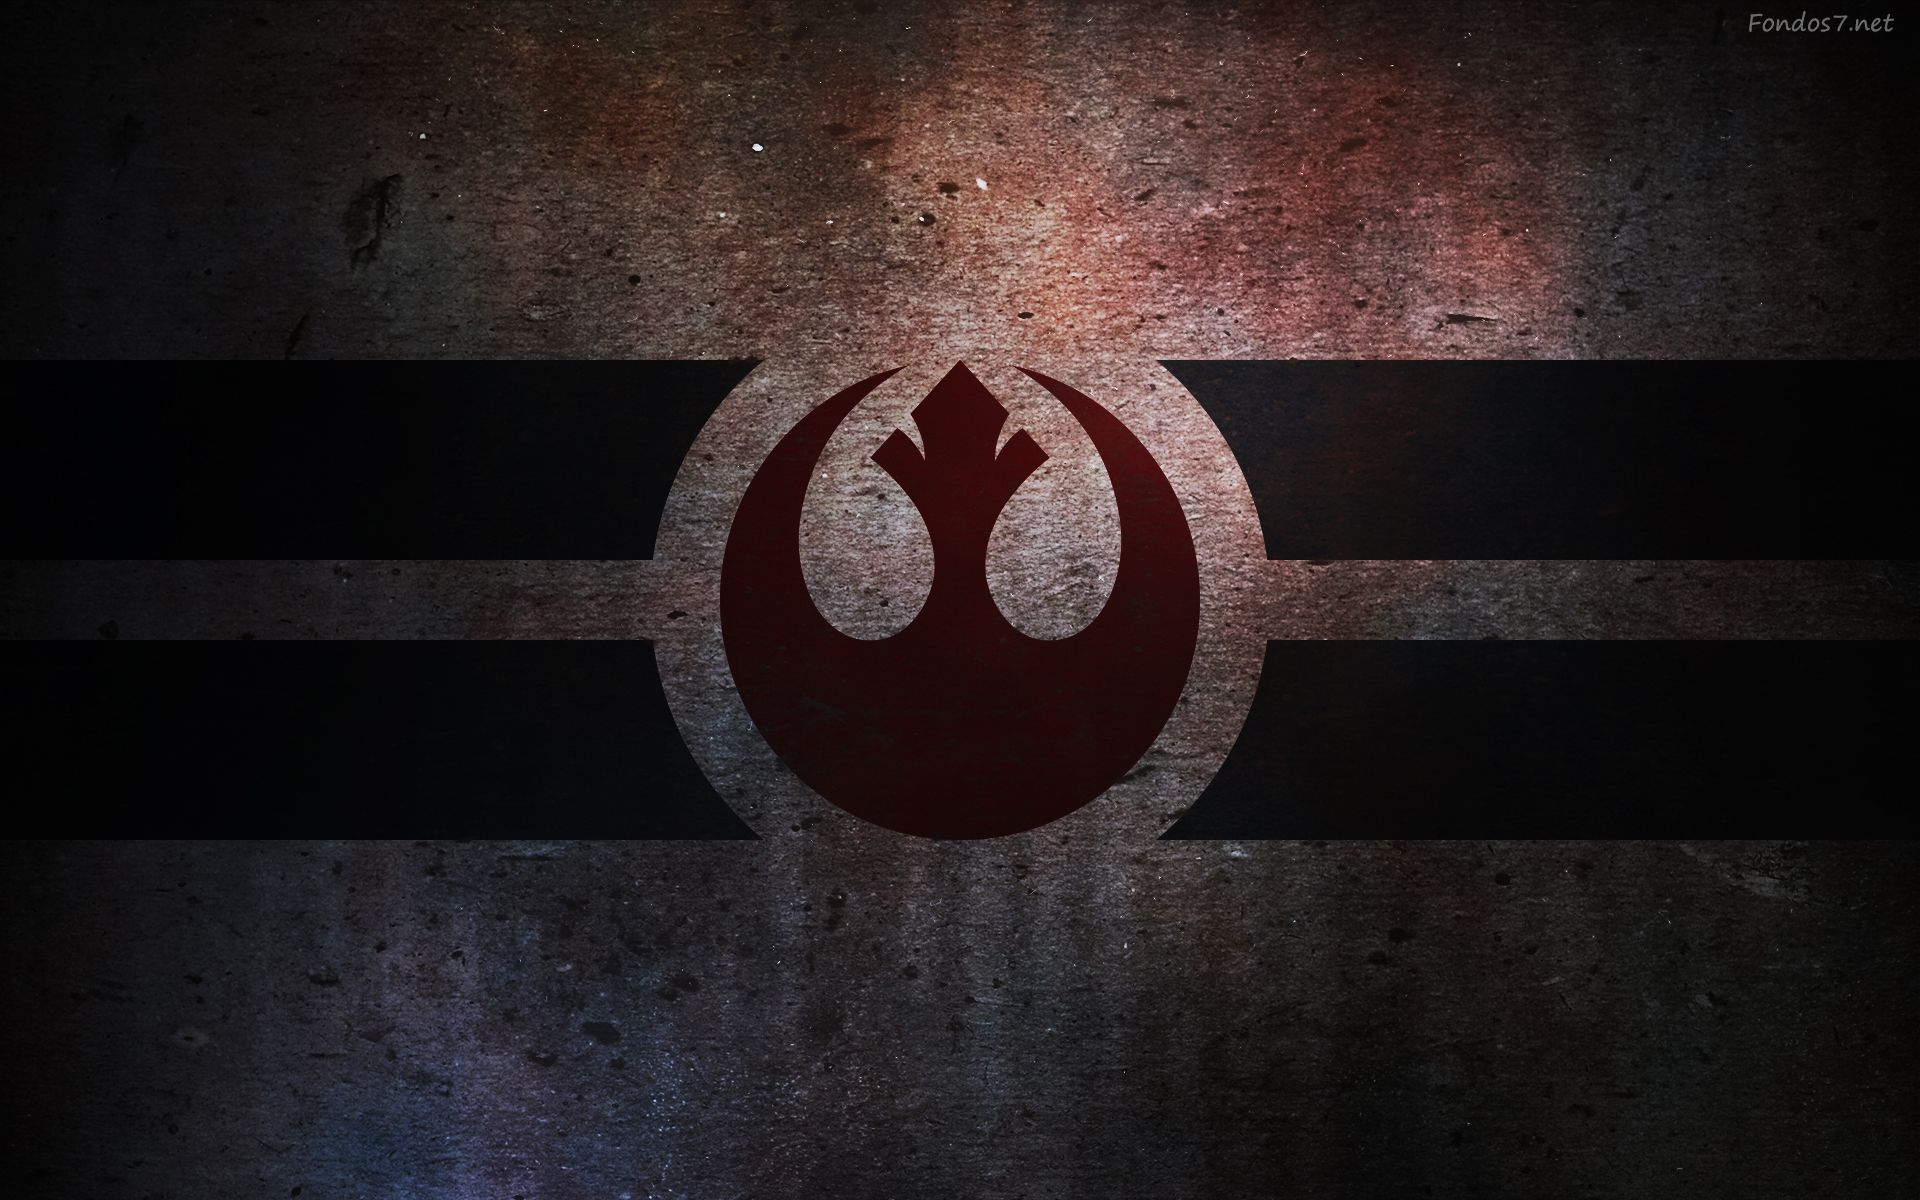 star wars empire wallpapers desktop background | star wars